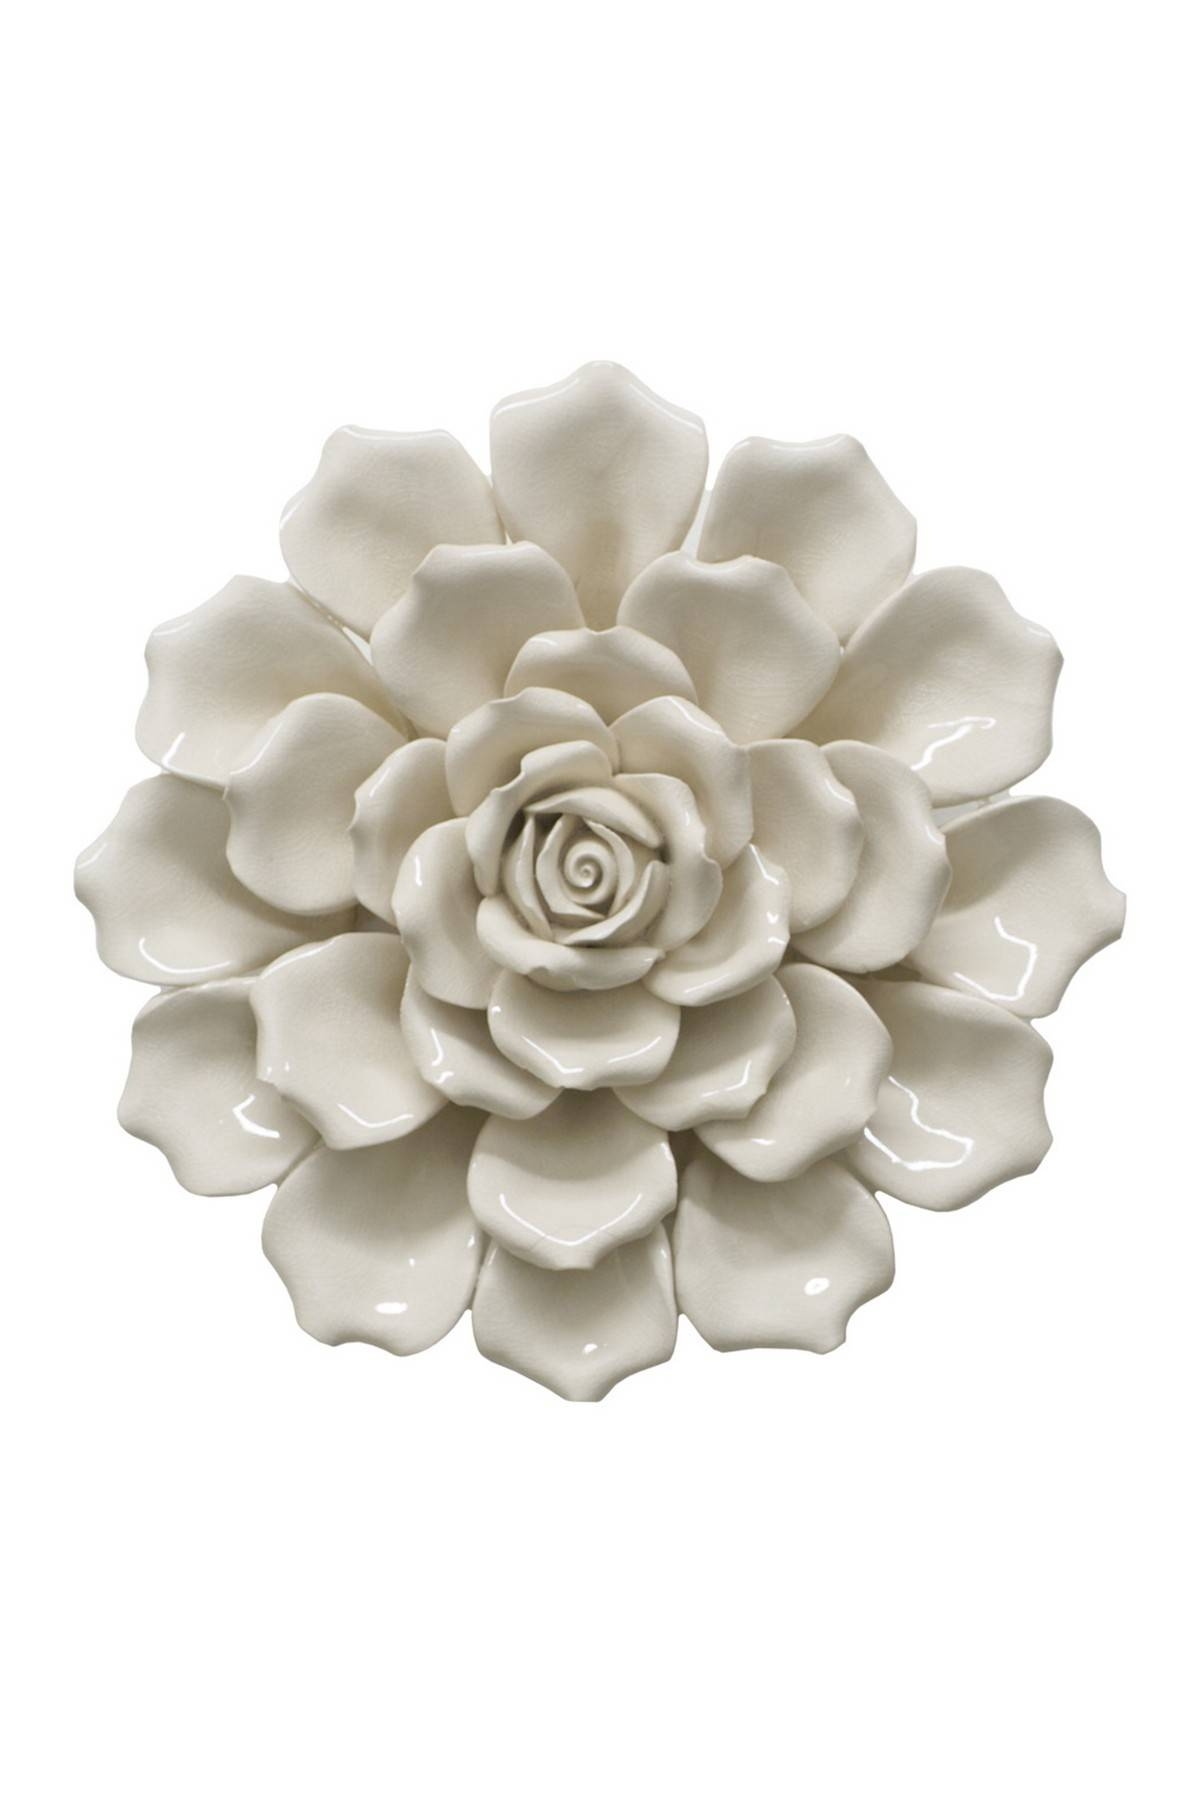 Imposing Ideas Ceramic Flower Wall Decor Spectacular Design Pertaining To Recent Ceramic Flower Wall Art (Gallery 4 of 30)